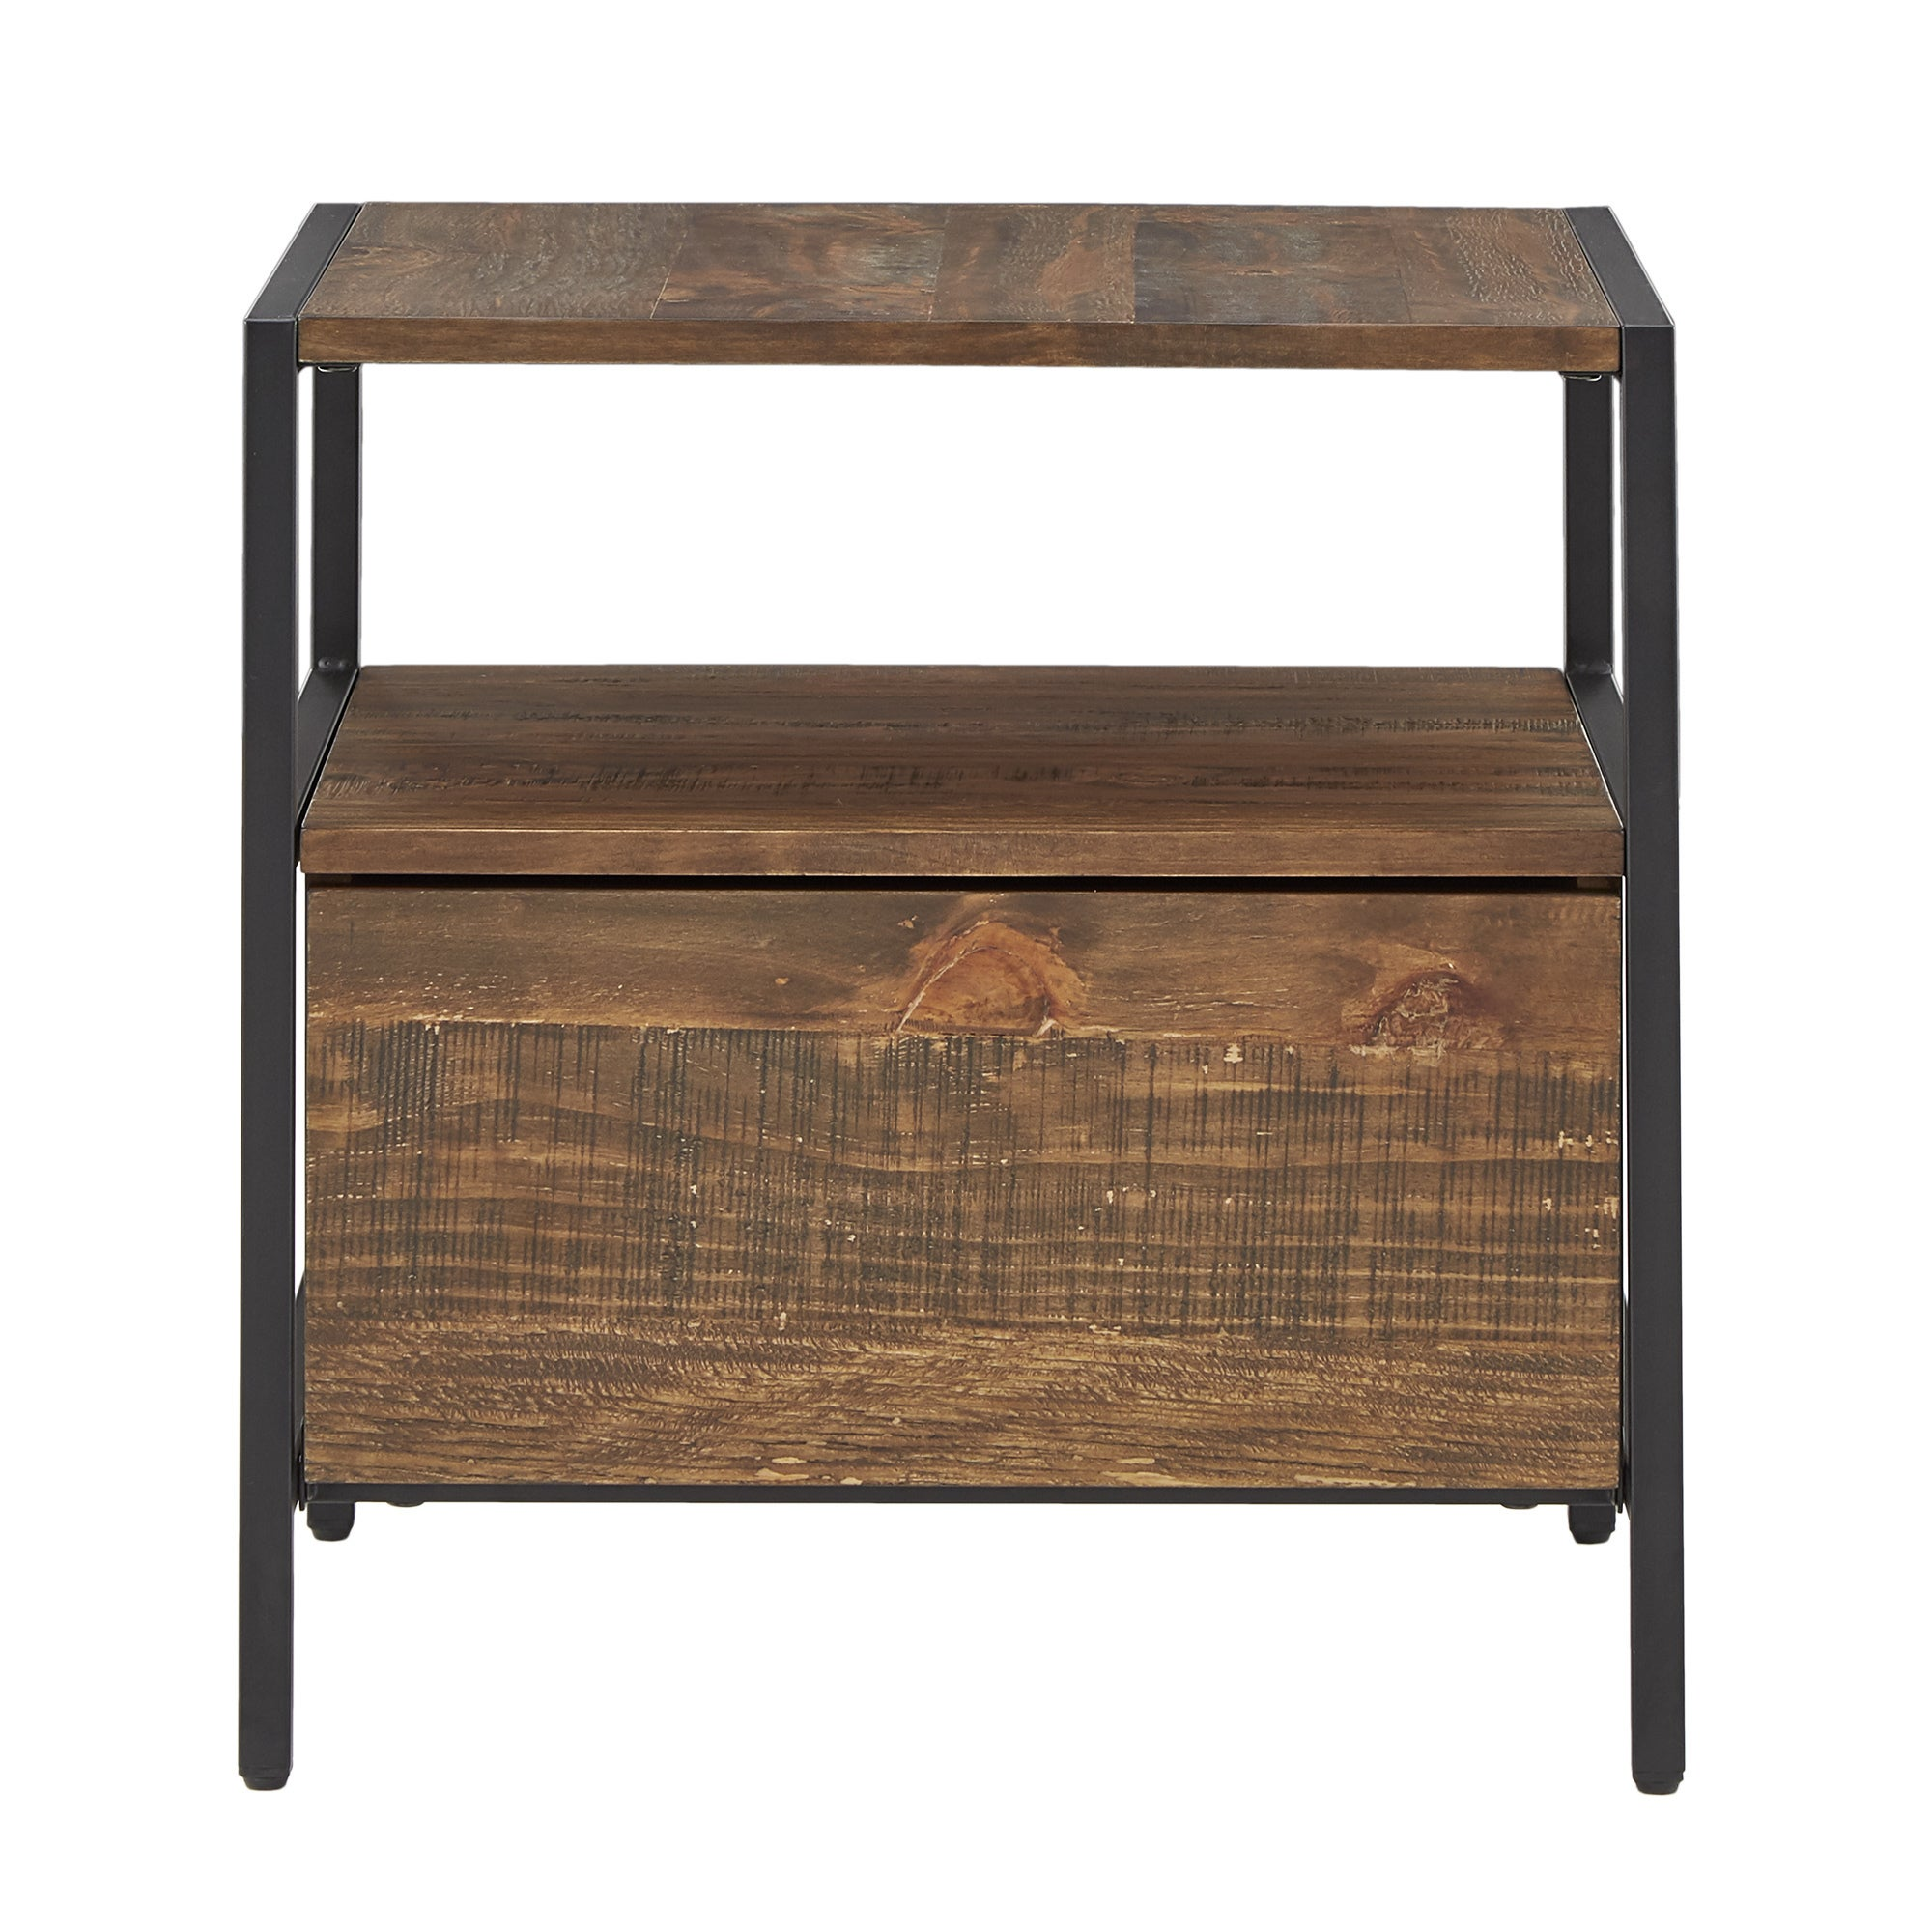 Shop Corey 1 Drawer Rustic Brown End Table By INSPIRE Q Modern   On Sale    Free Shipping Today   Overstock.com   19513215